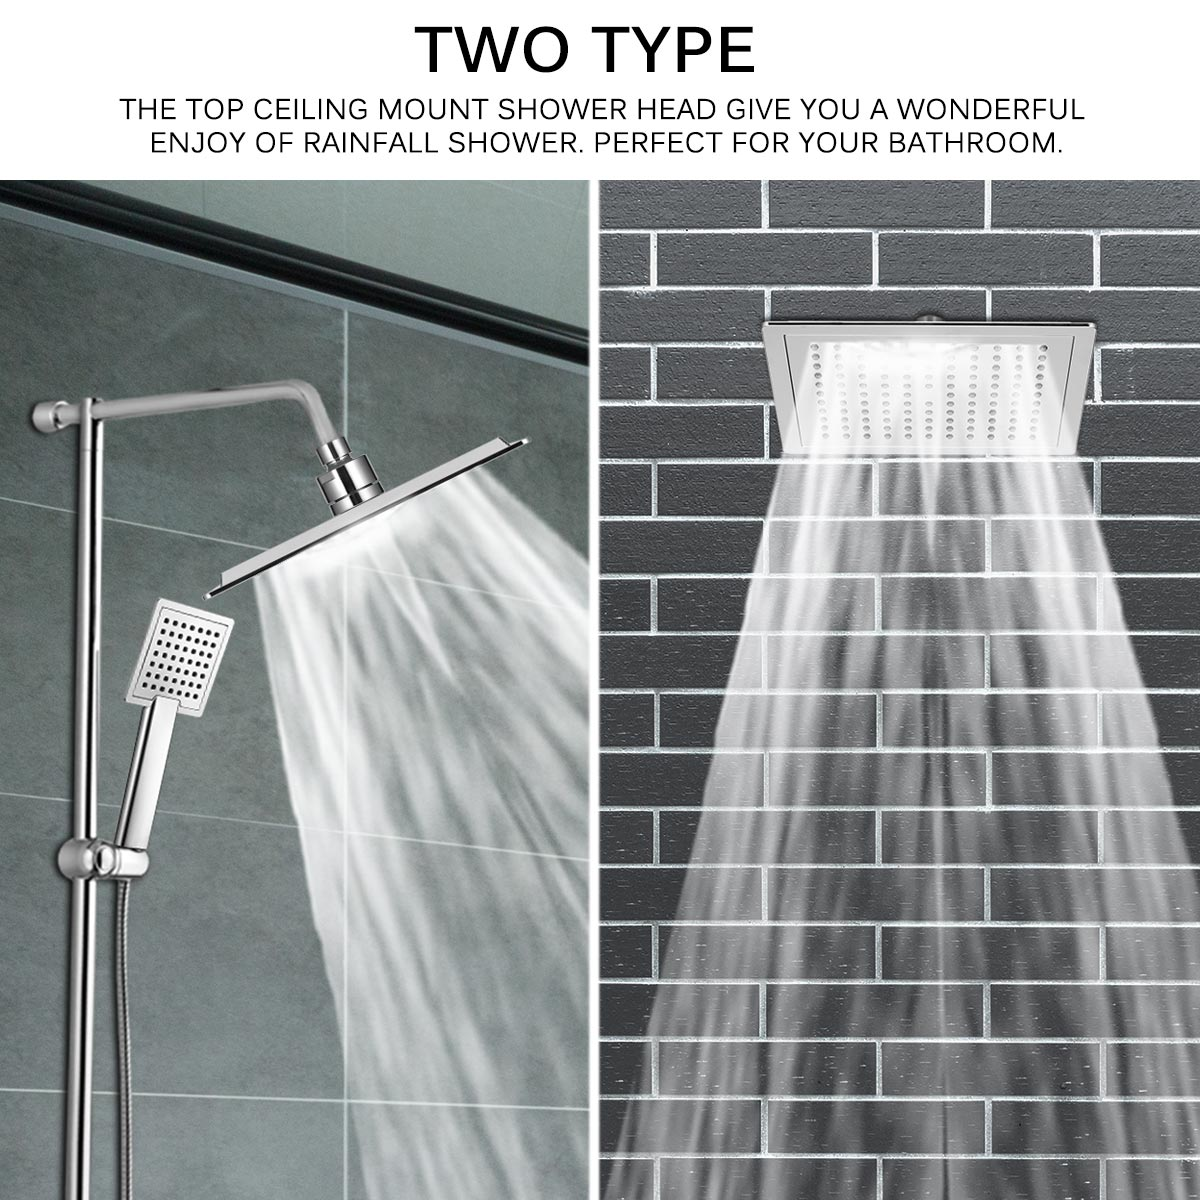 2019 12 Inch Stainless Steel Rainfall Shower Head Ultra Thin Chrome Finished Bathroom Shower Head Square Type Modern Bathroom Tool From Suozhi1993